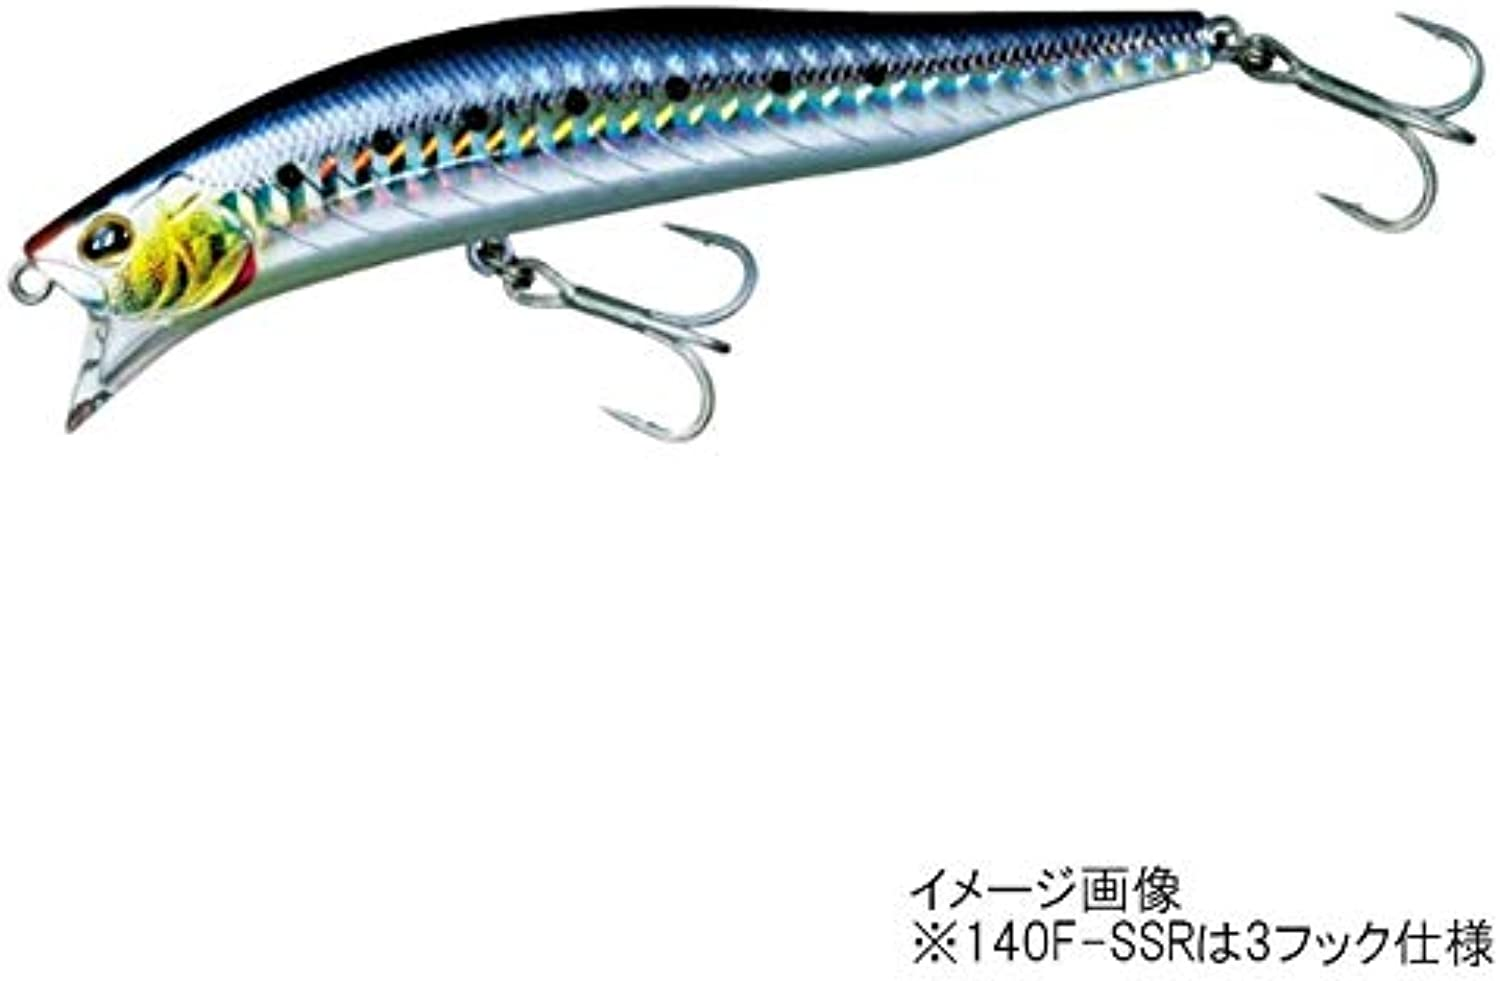 Daiwa (Daiwa) minnow sea bass More Than cross wake-140F-SSR sardines lure